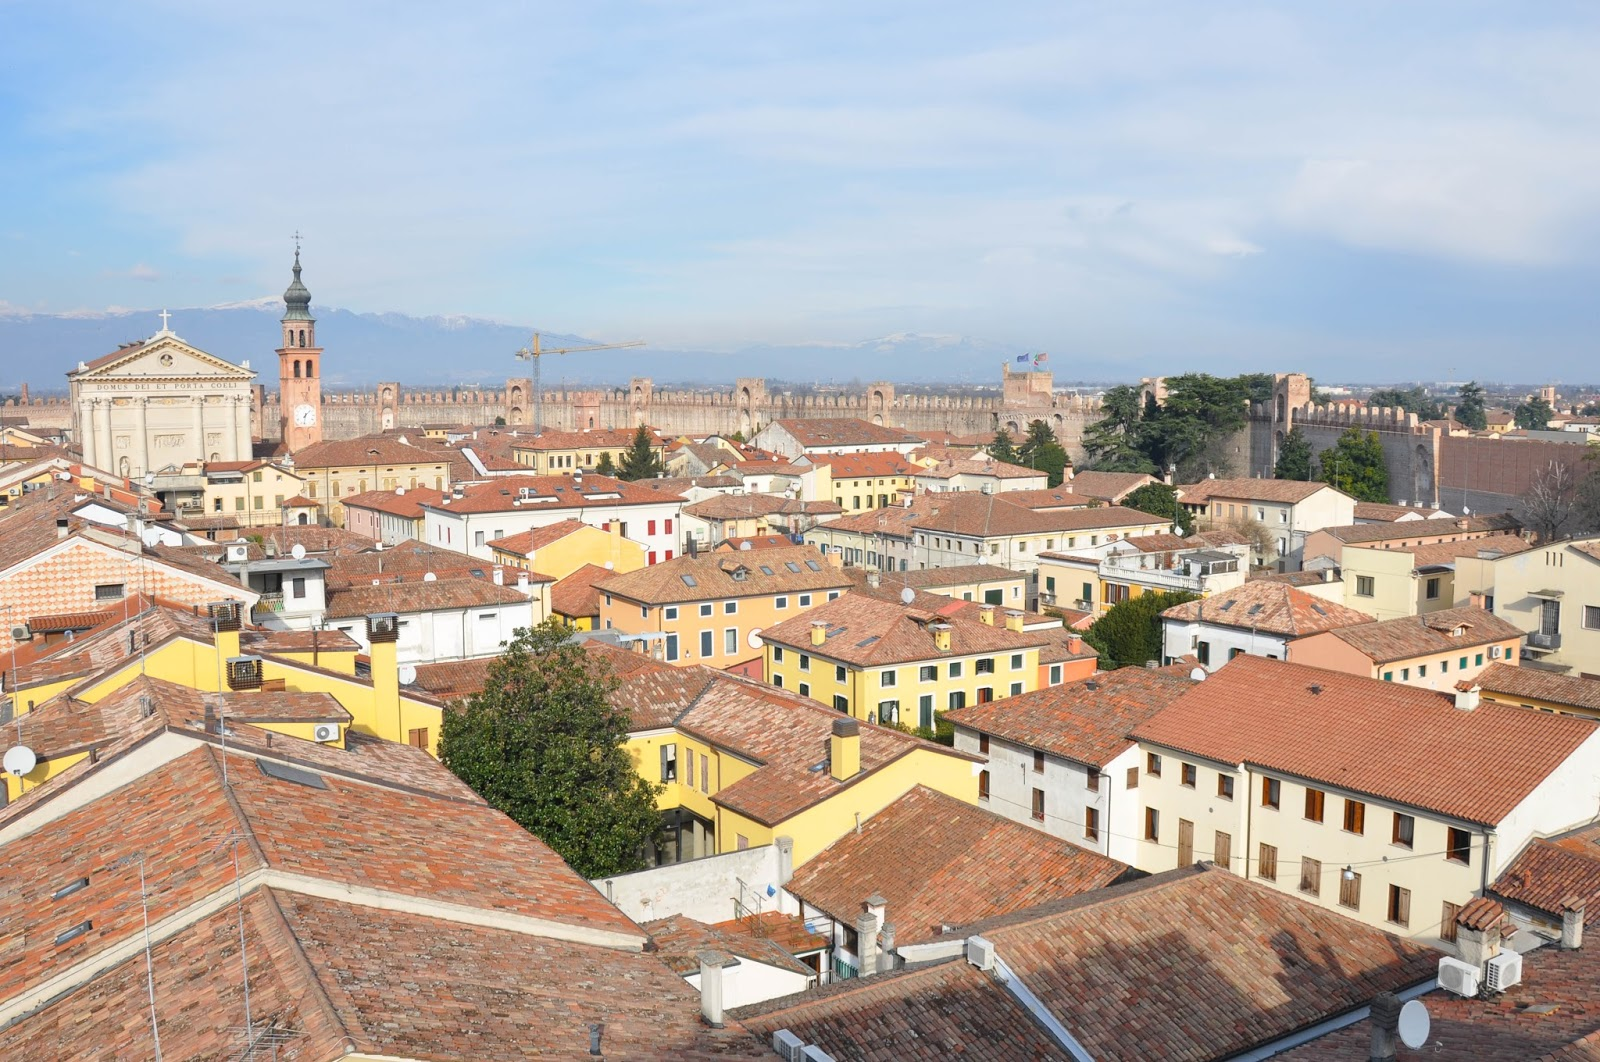 A panoramic view of the medieval town of Cittadella in Veneto, Italy and its wall - www.rossiwrites.com